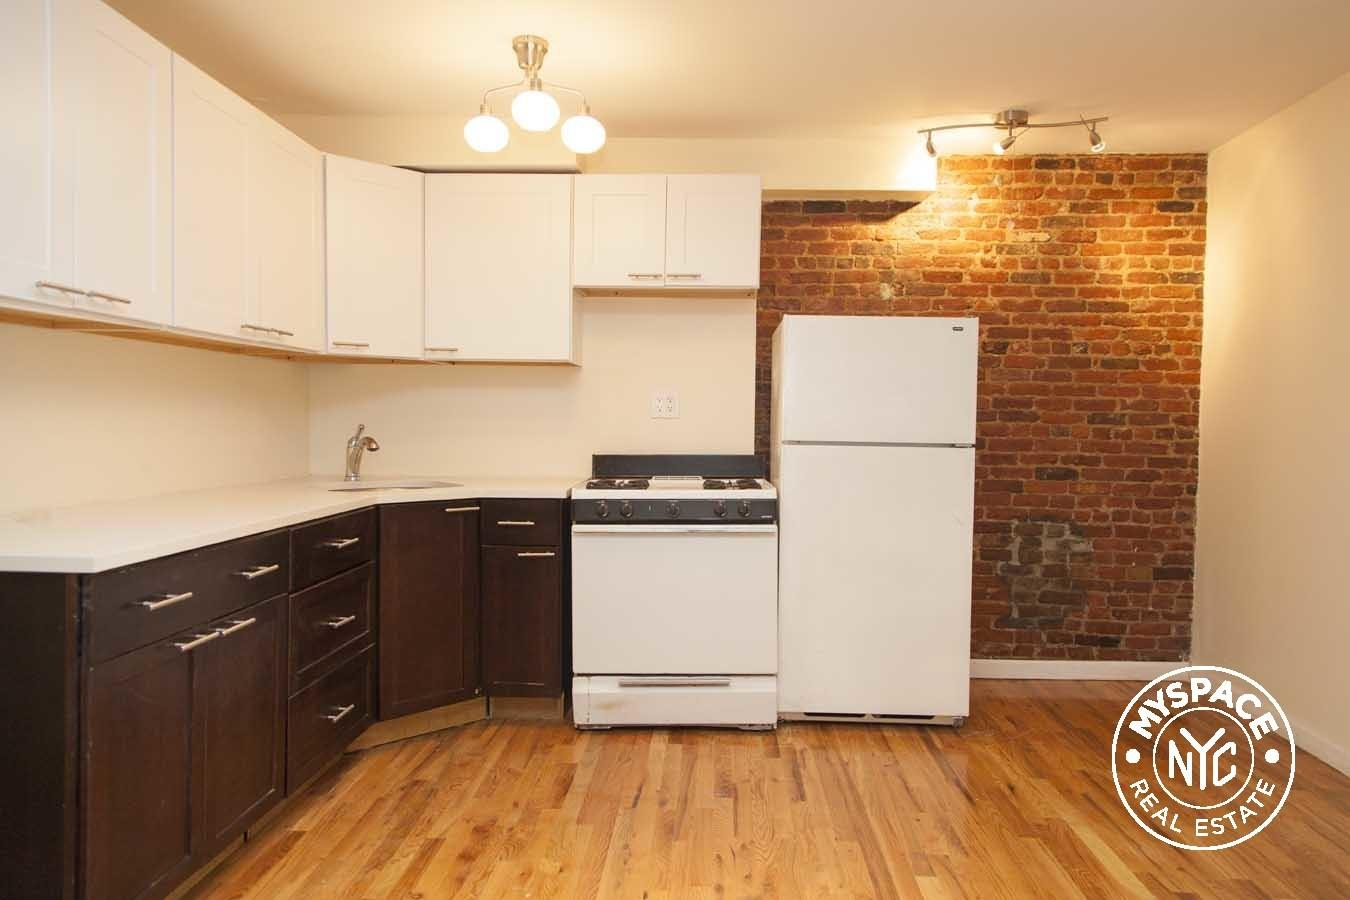 REGAL LIVING ON BEDFORD IN BED-STUY! MOVE-IN ASAP photo #1